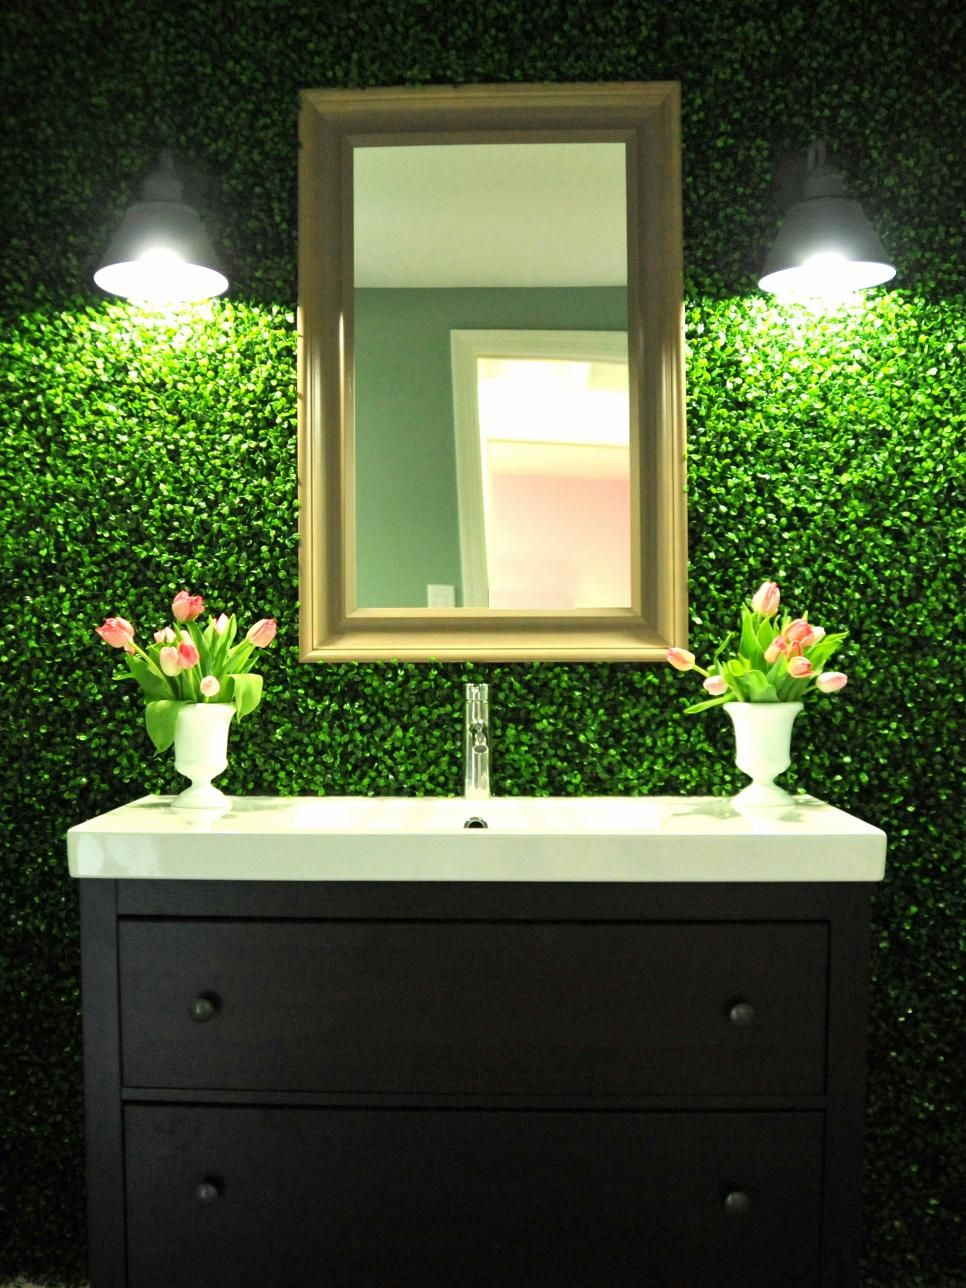 Pictures of Bathroom Lighting Ideas and Options | Lights, Modern and ...